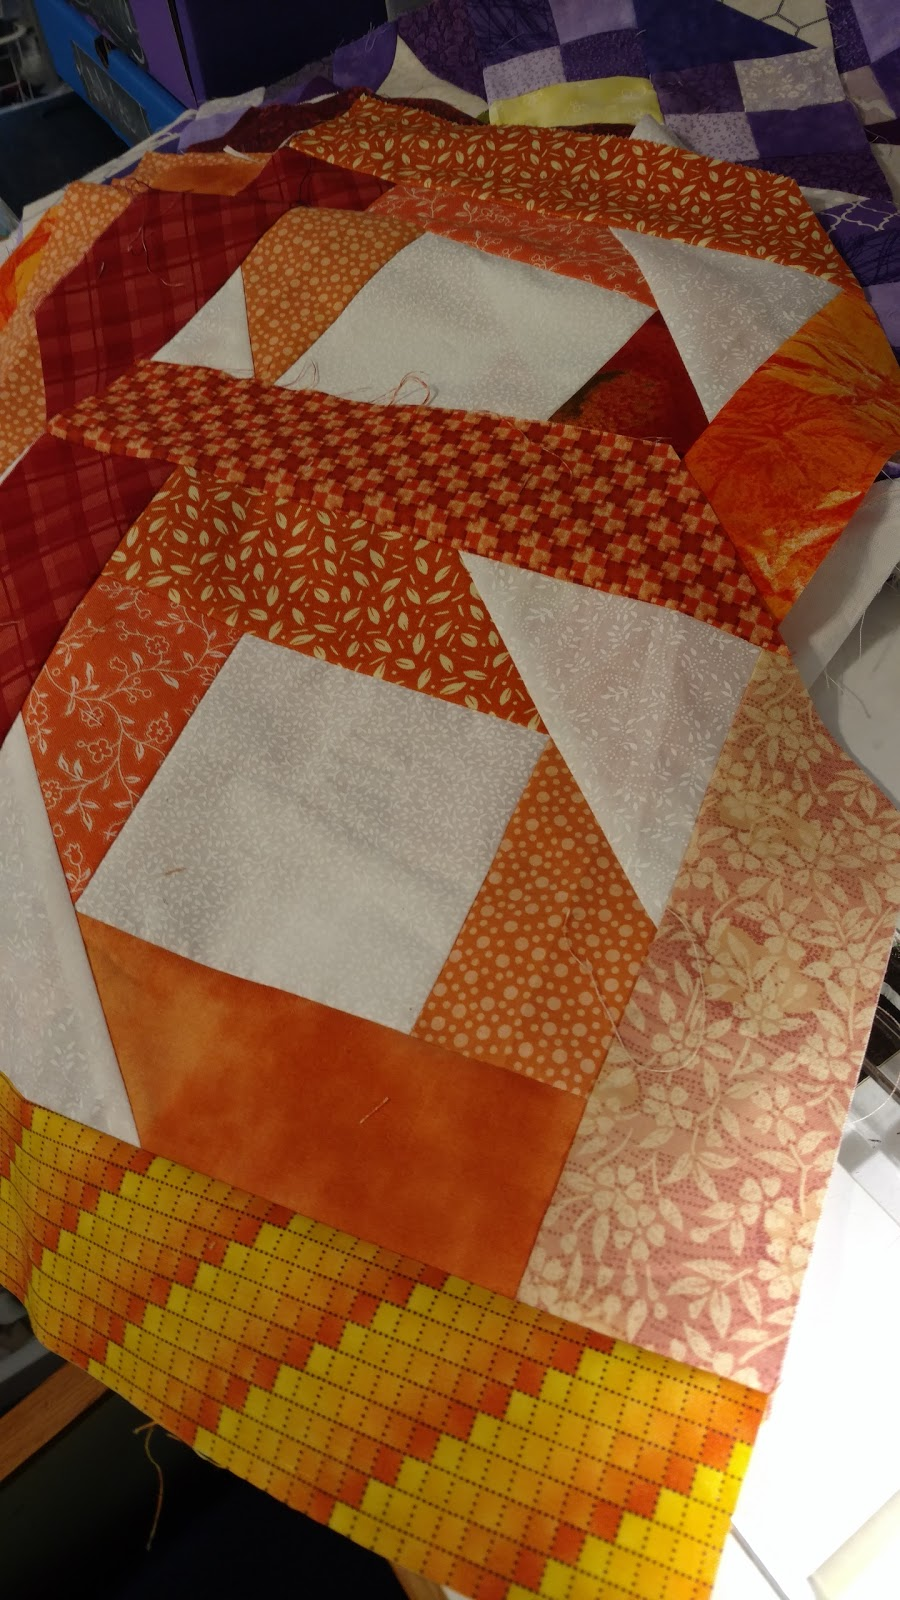 am so tanya have quilt gray says on will thinking richard better to and purple with i be what maybe of this about mock up is orange a quilts would my